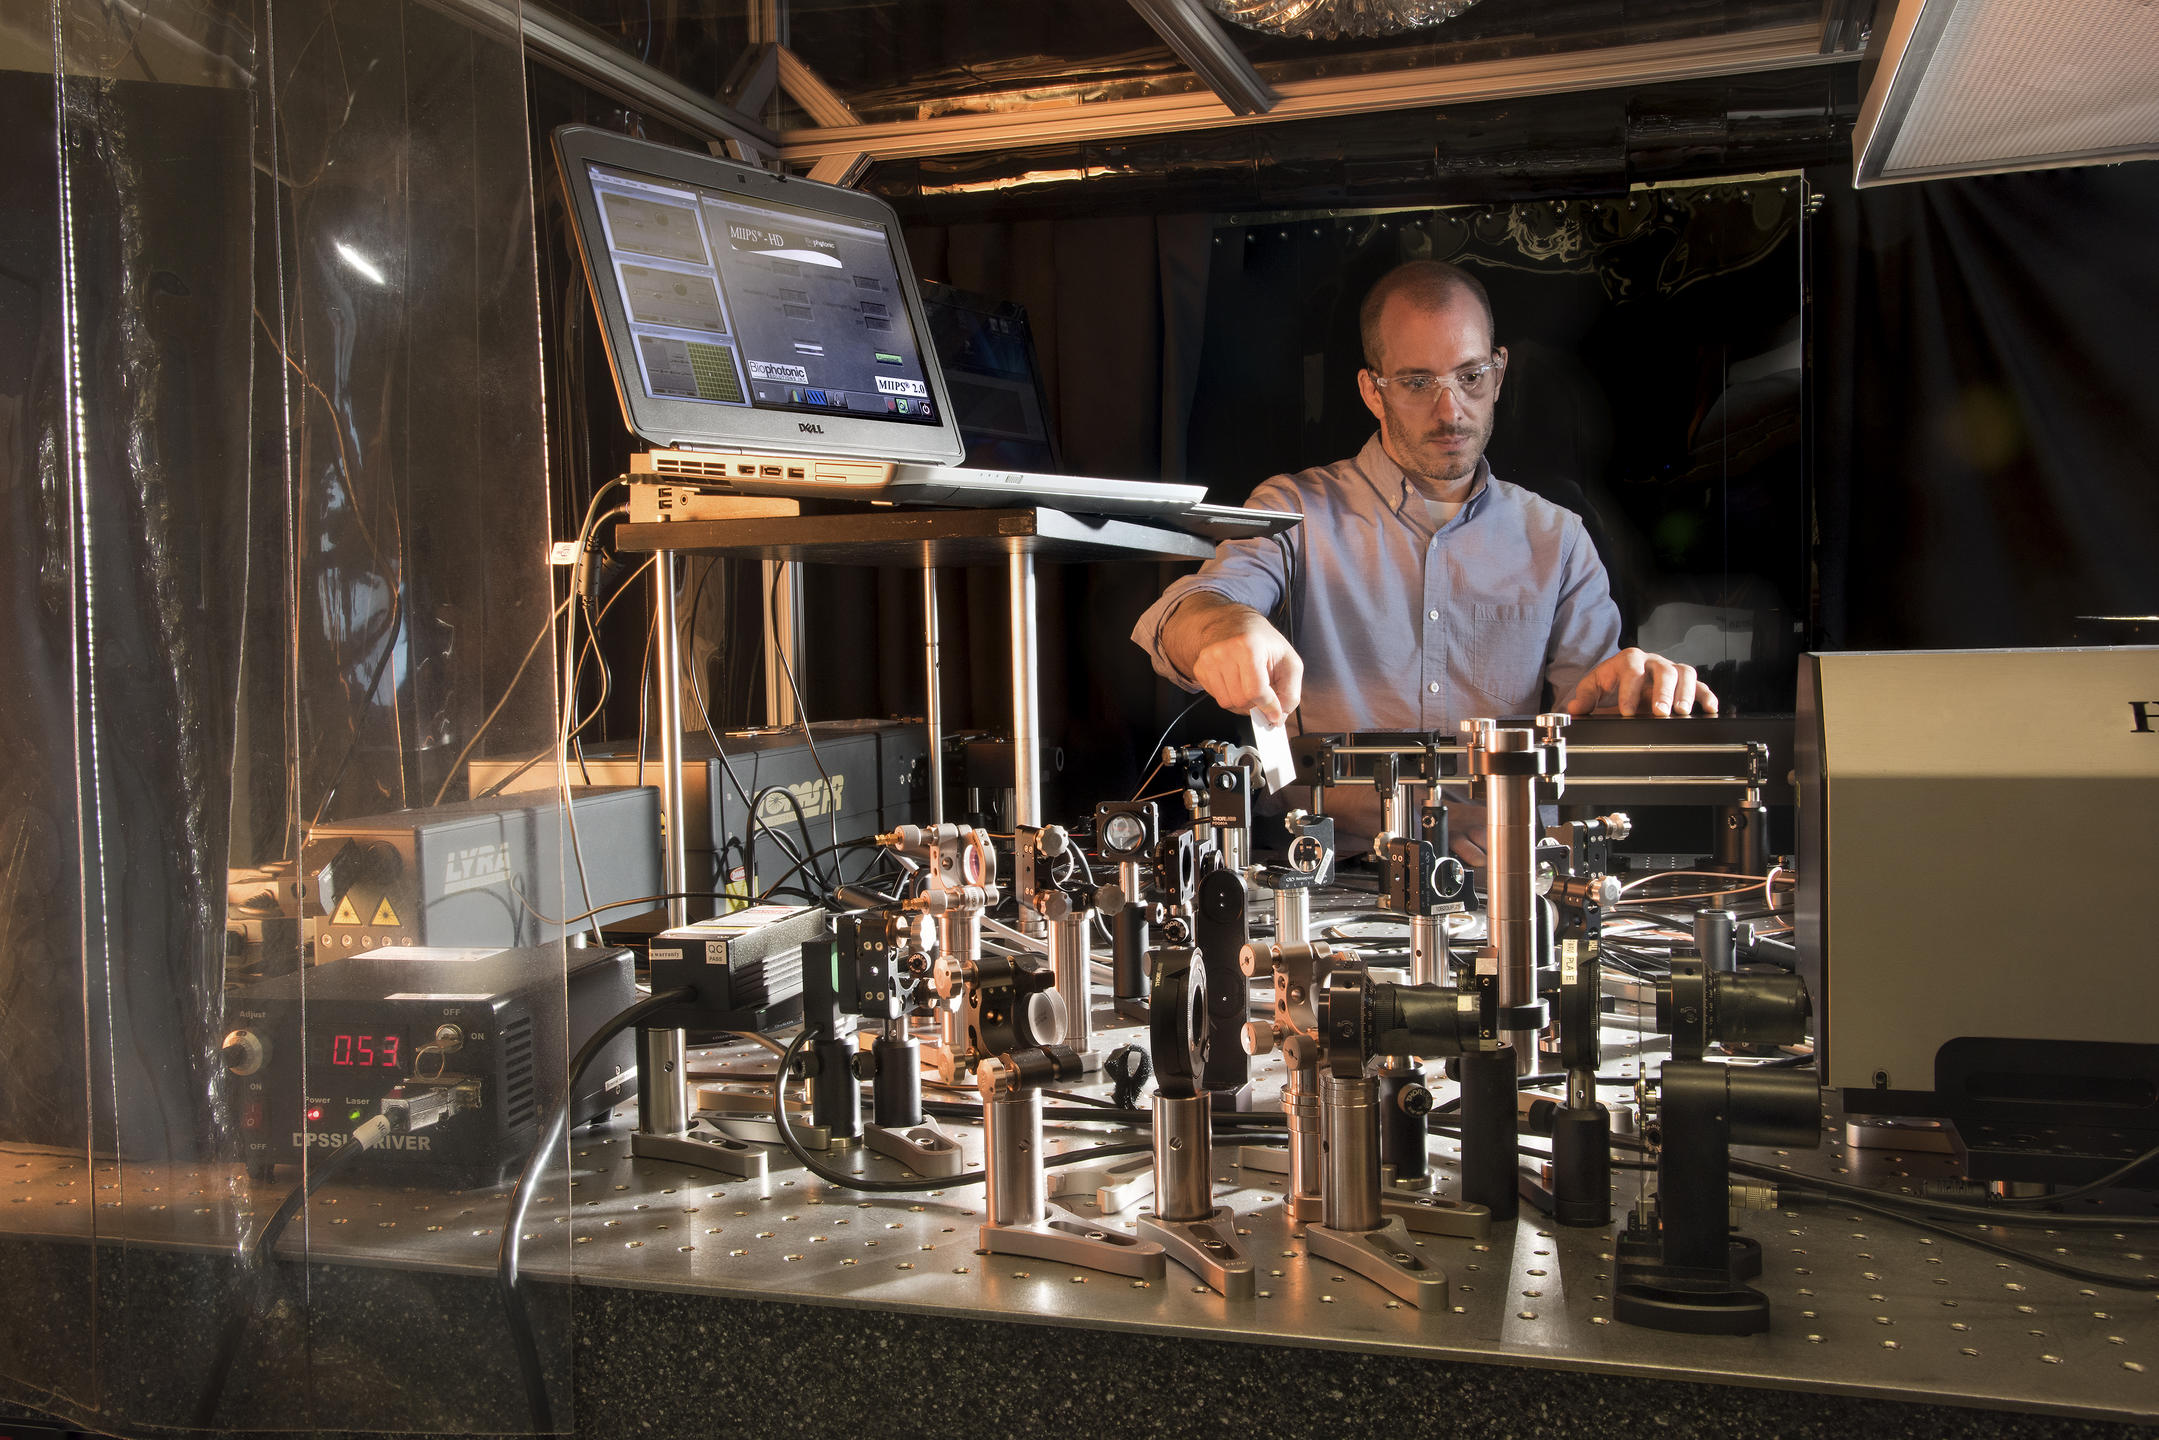 Researcher John Bender setting up a laser table in a laboratory